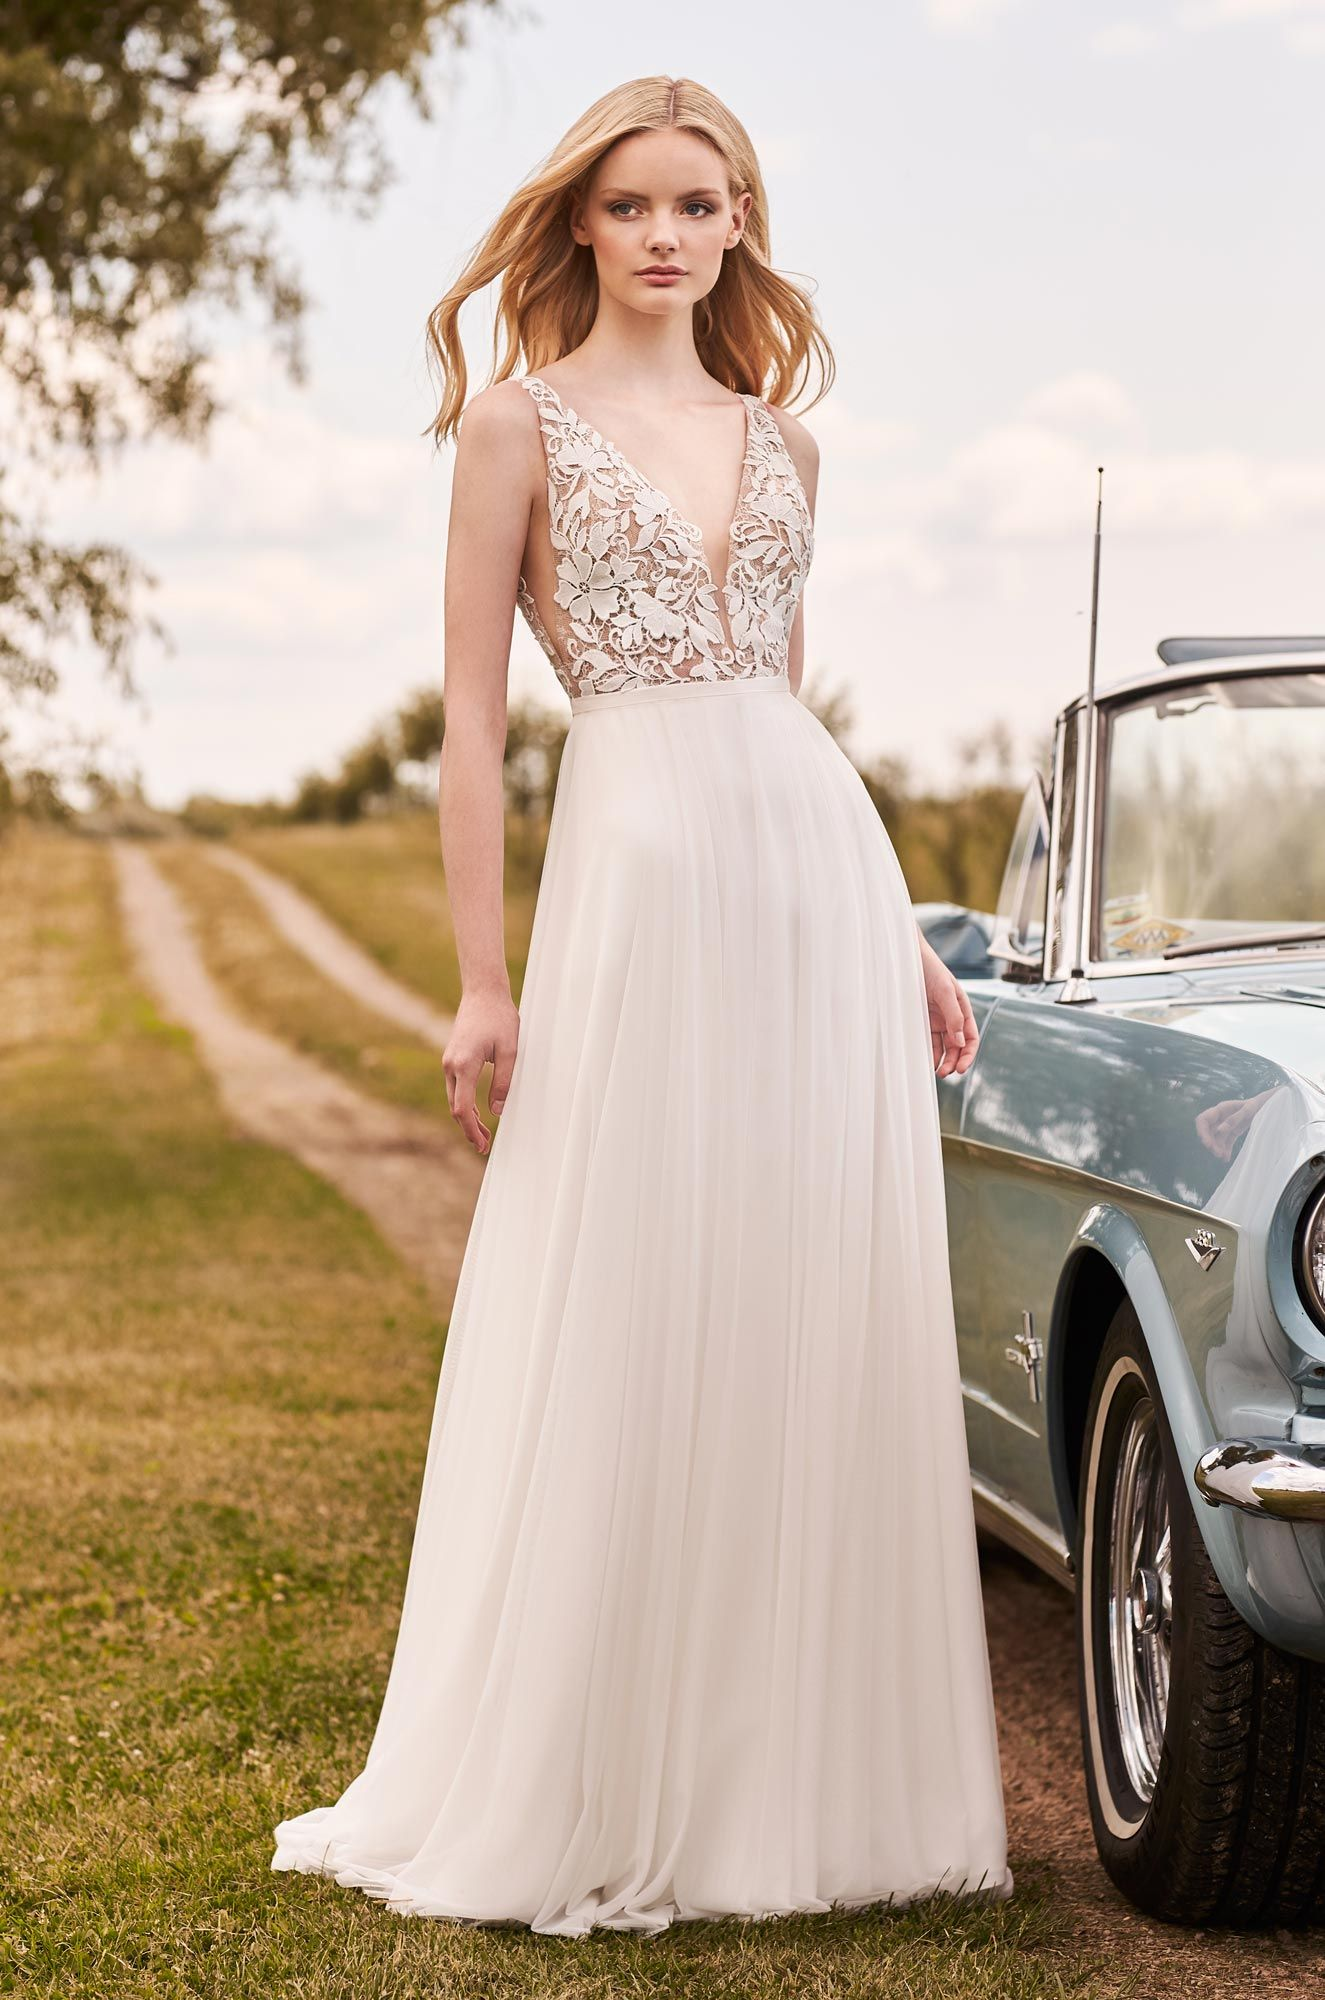 Graceful A Line Wedding Dress Style 2296 With Images Wedding Dress Styles Wedding Dress Trim A Line Wedding Dress,Black Dress To Wedding